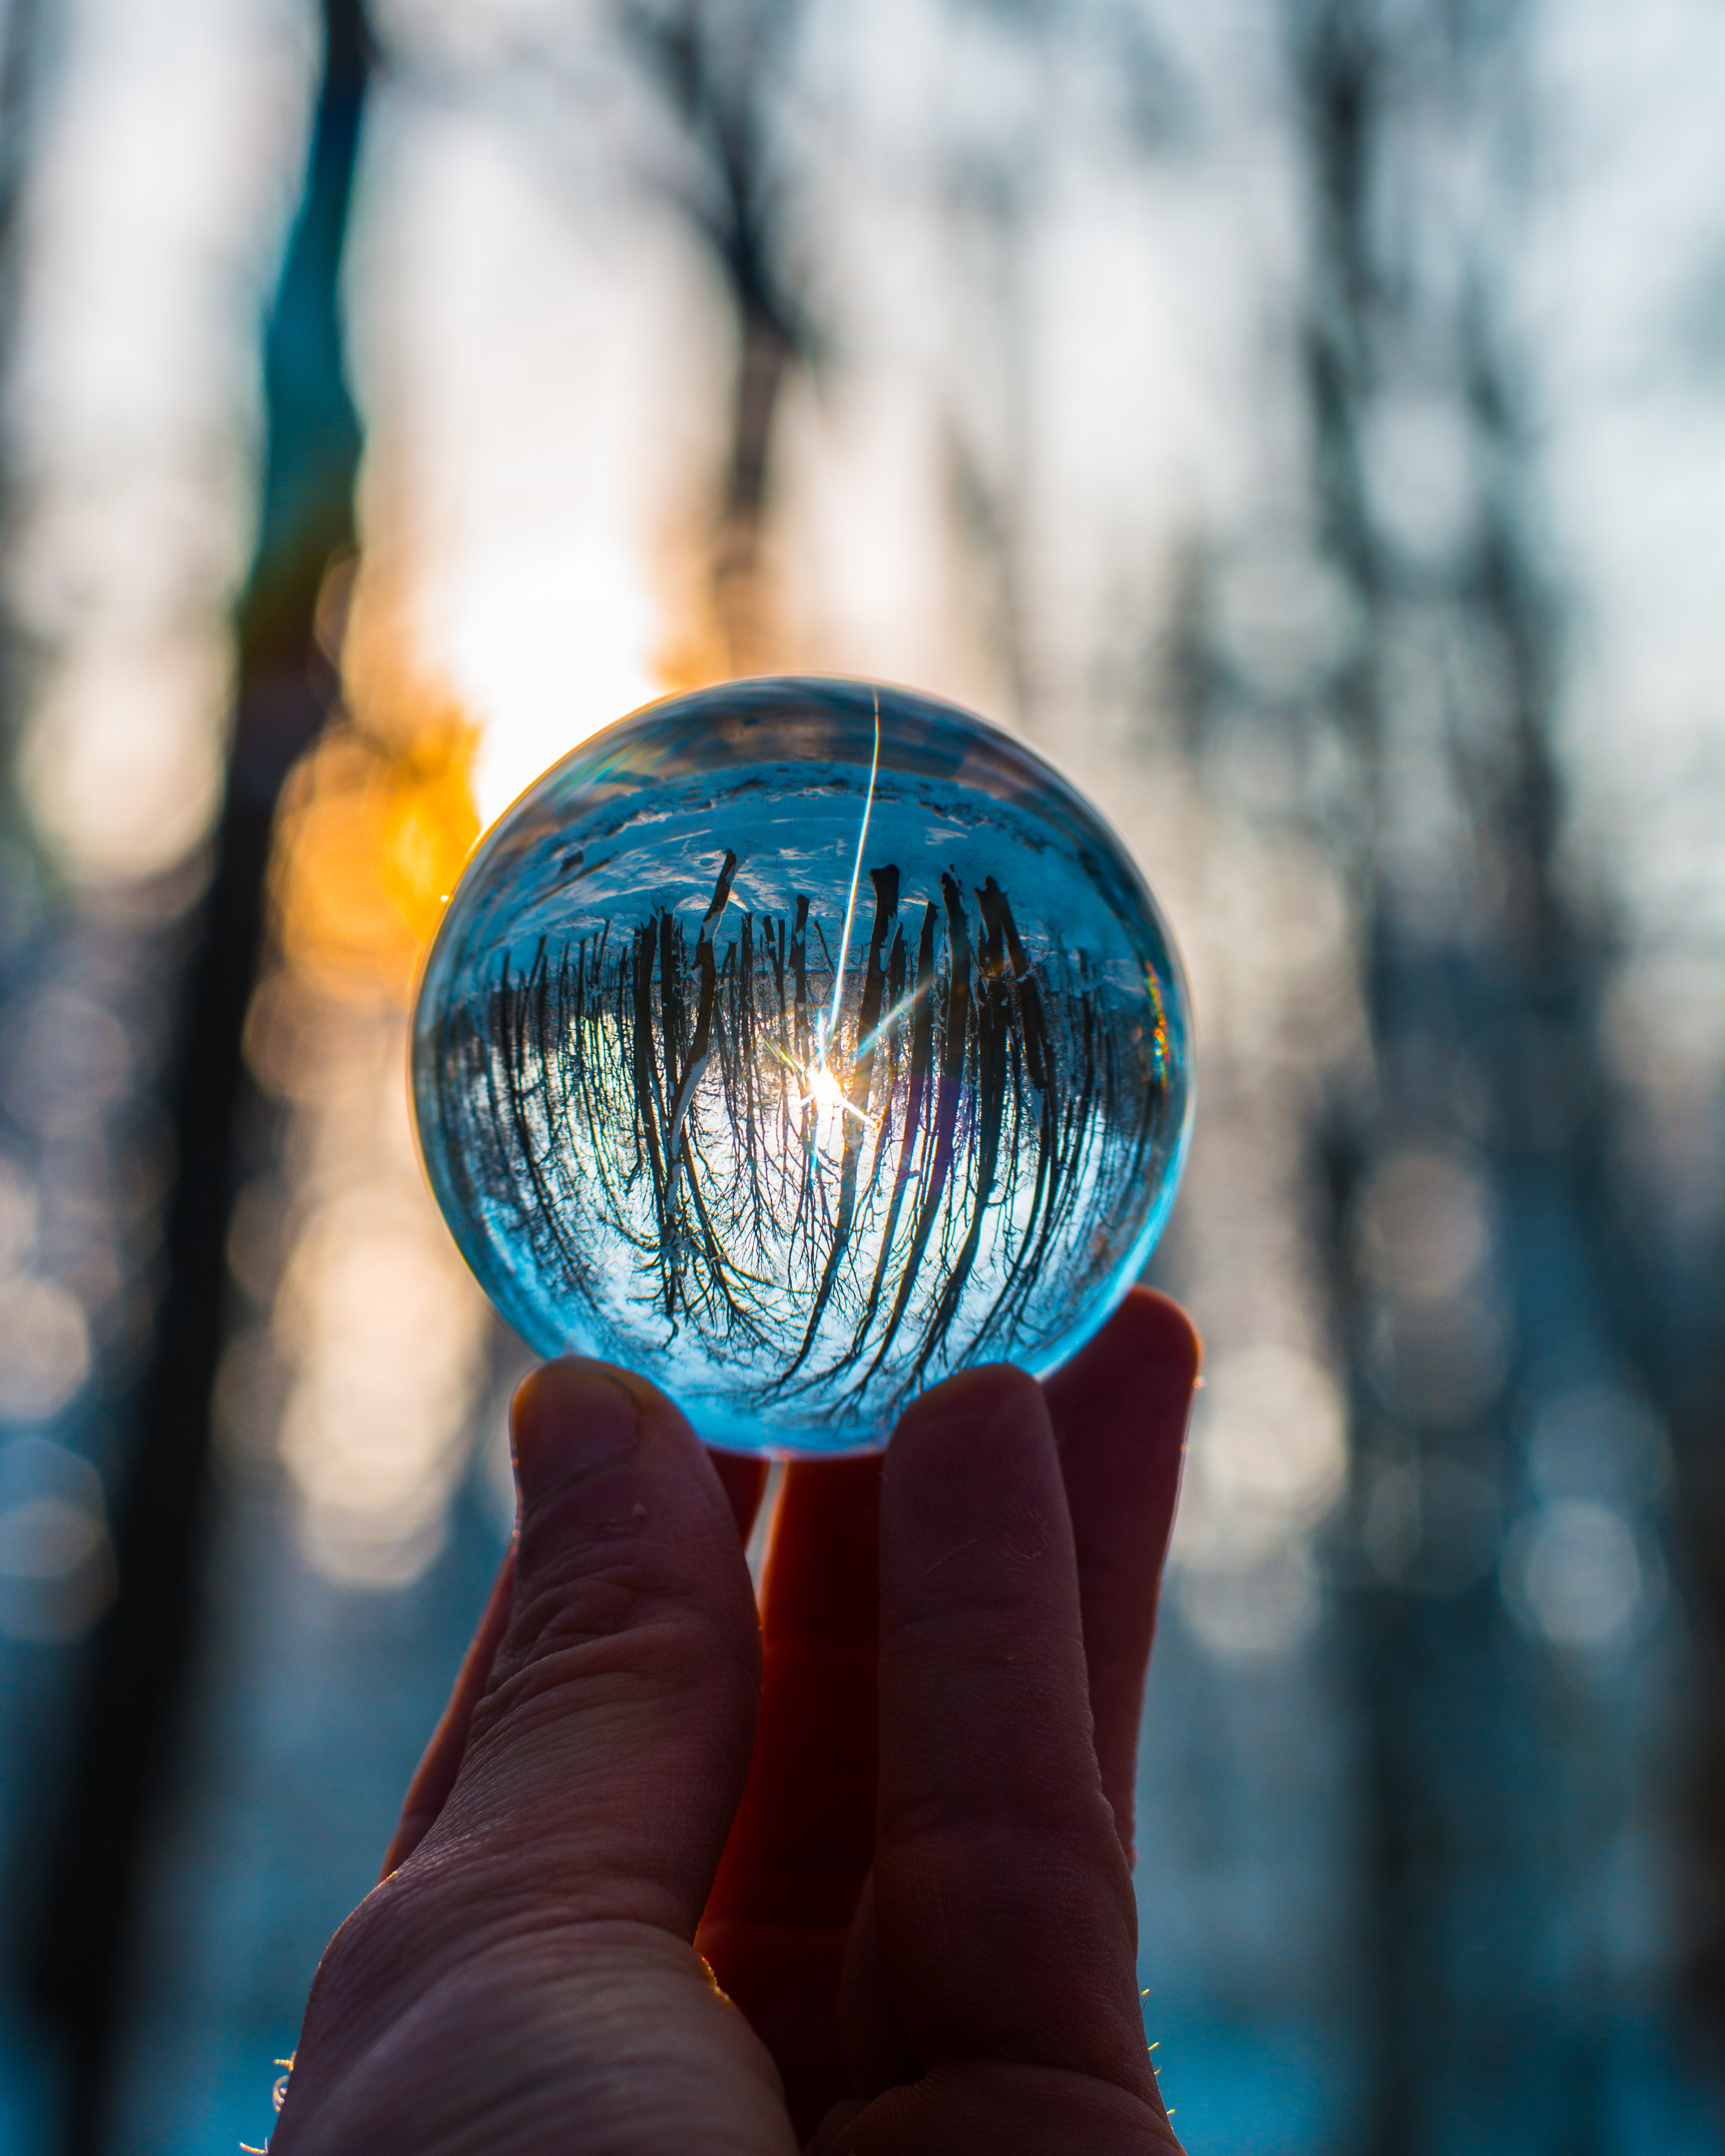 Photo Of Person Holding Crystal Ball Free Stock Photo